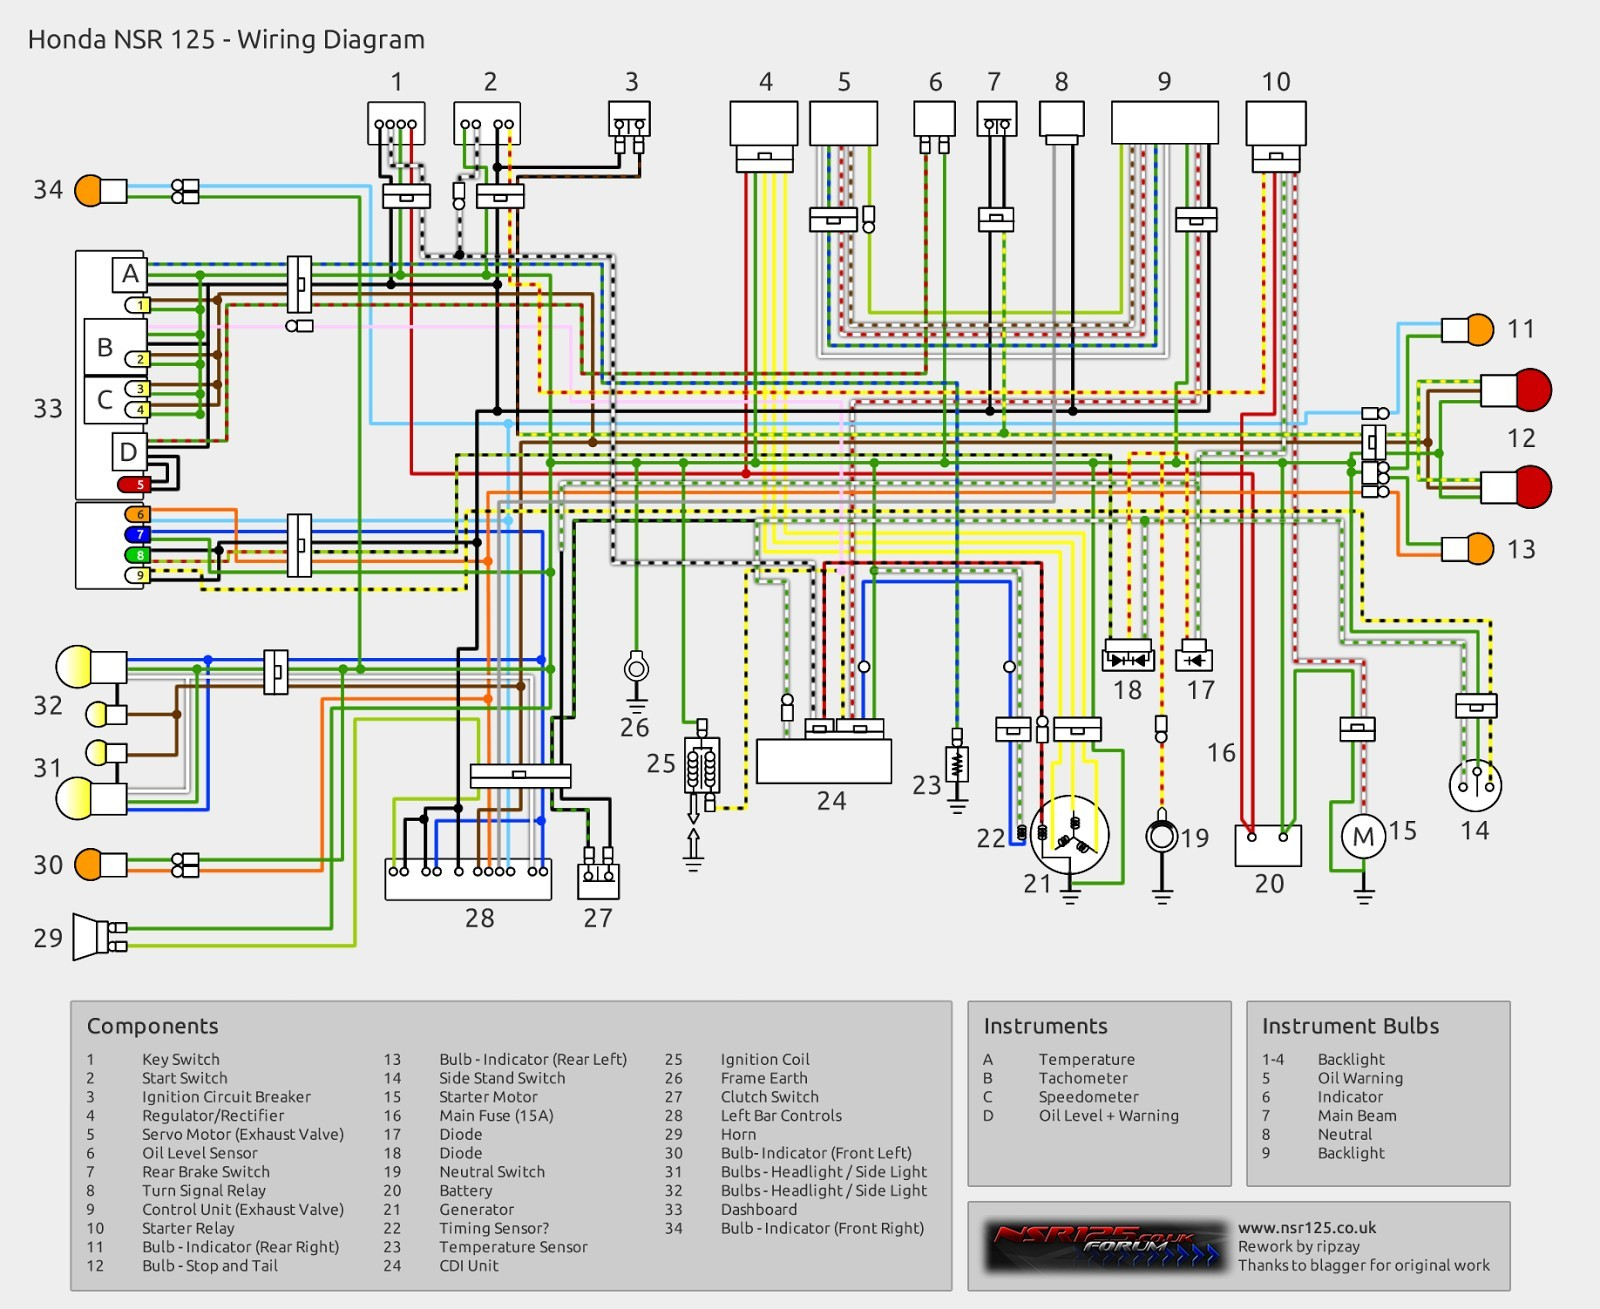 Honda Xl 125 Wiring Diagram Irelandnews Best Wiring Diagrams Of Honda Xl 125 Wiring Diagram